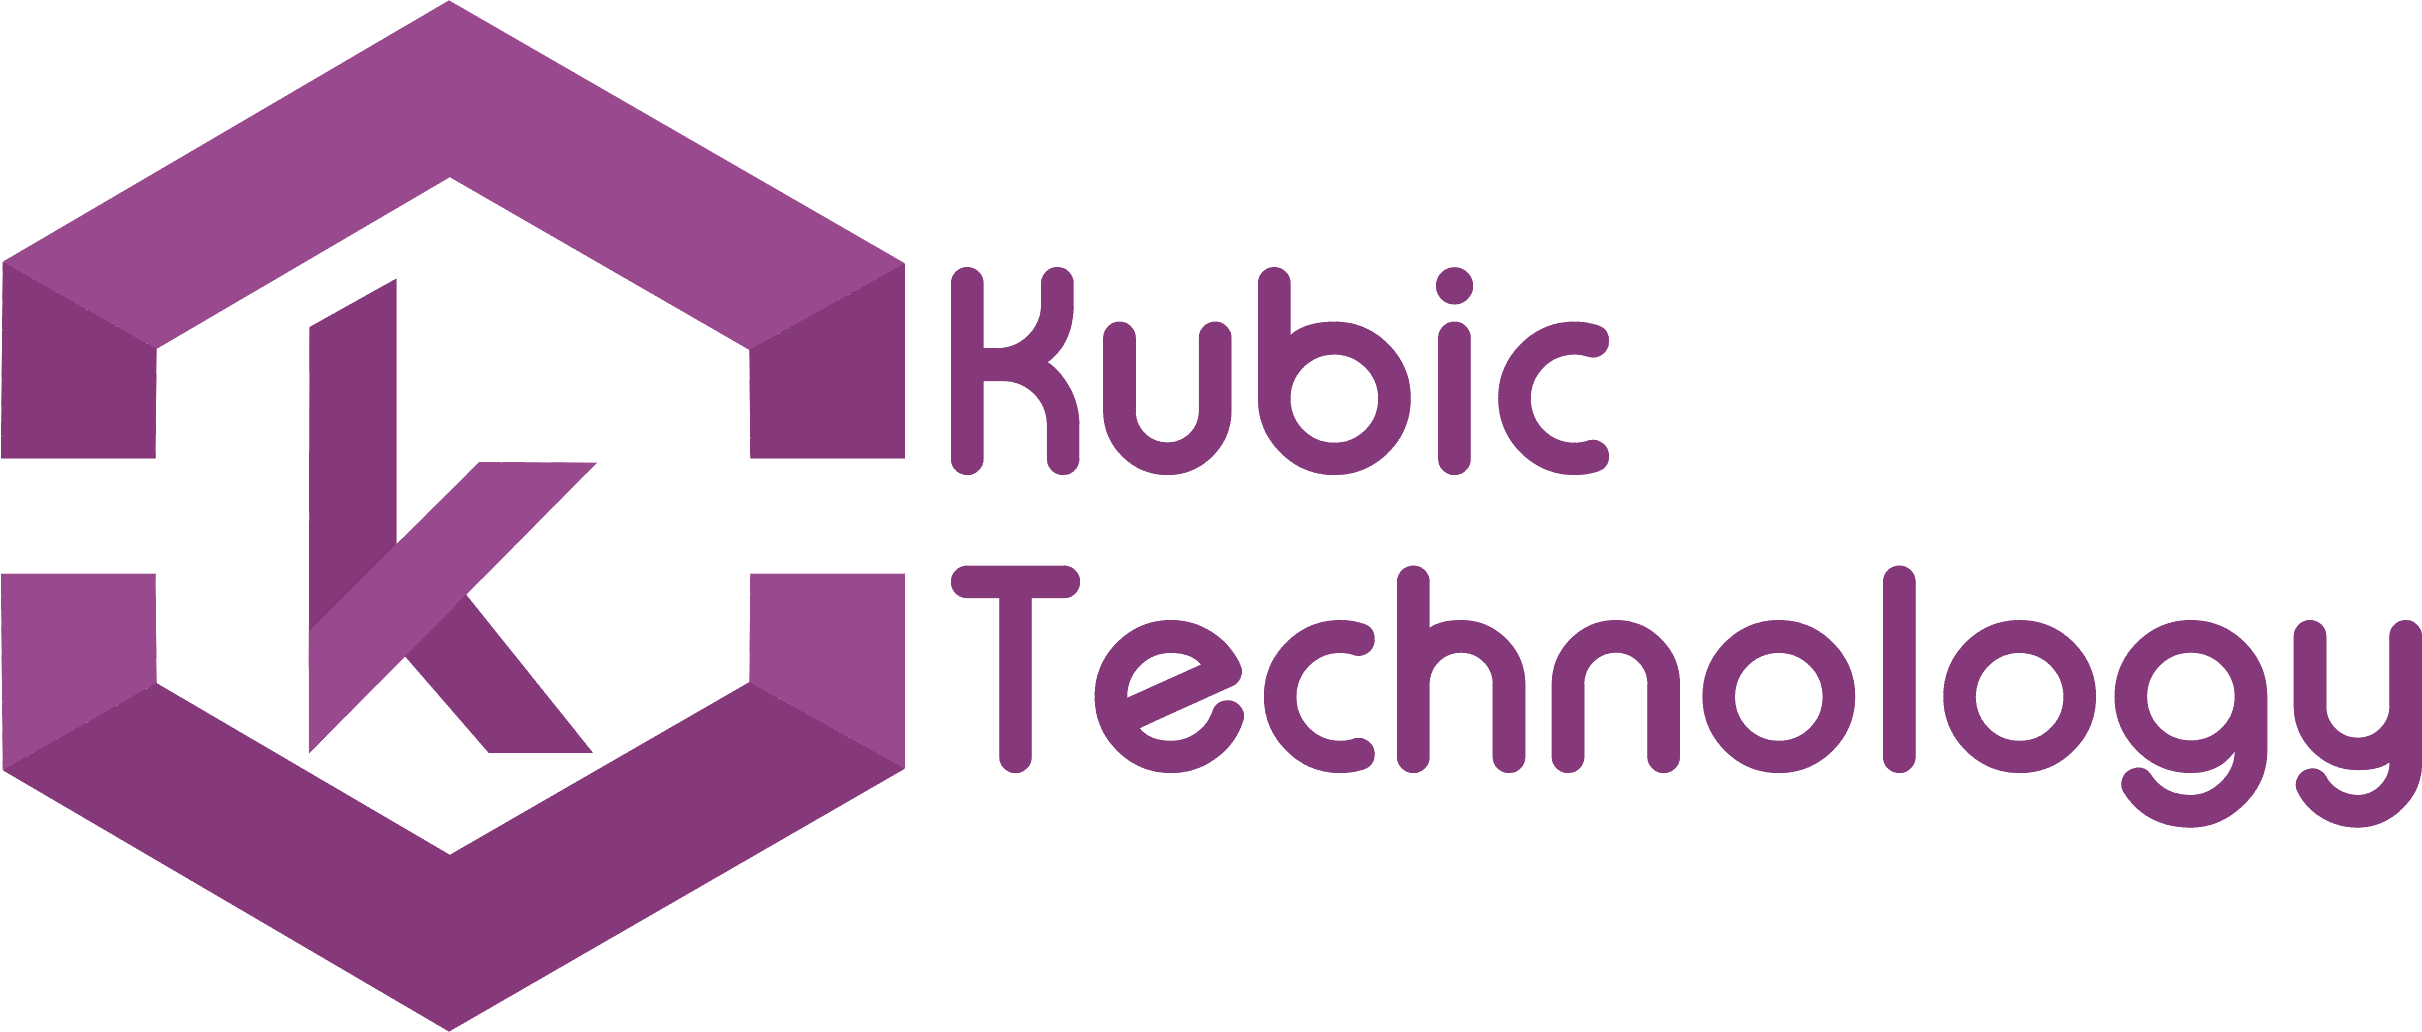 Kubic Technology Logo